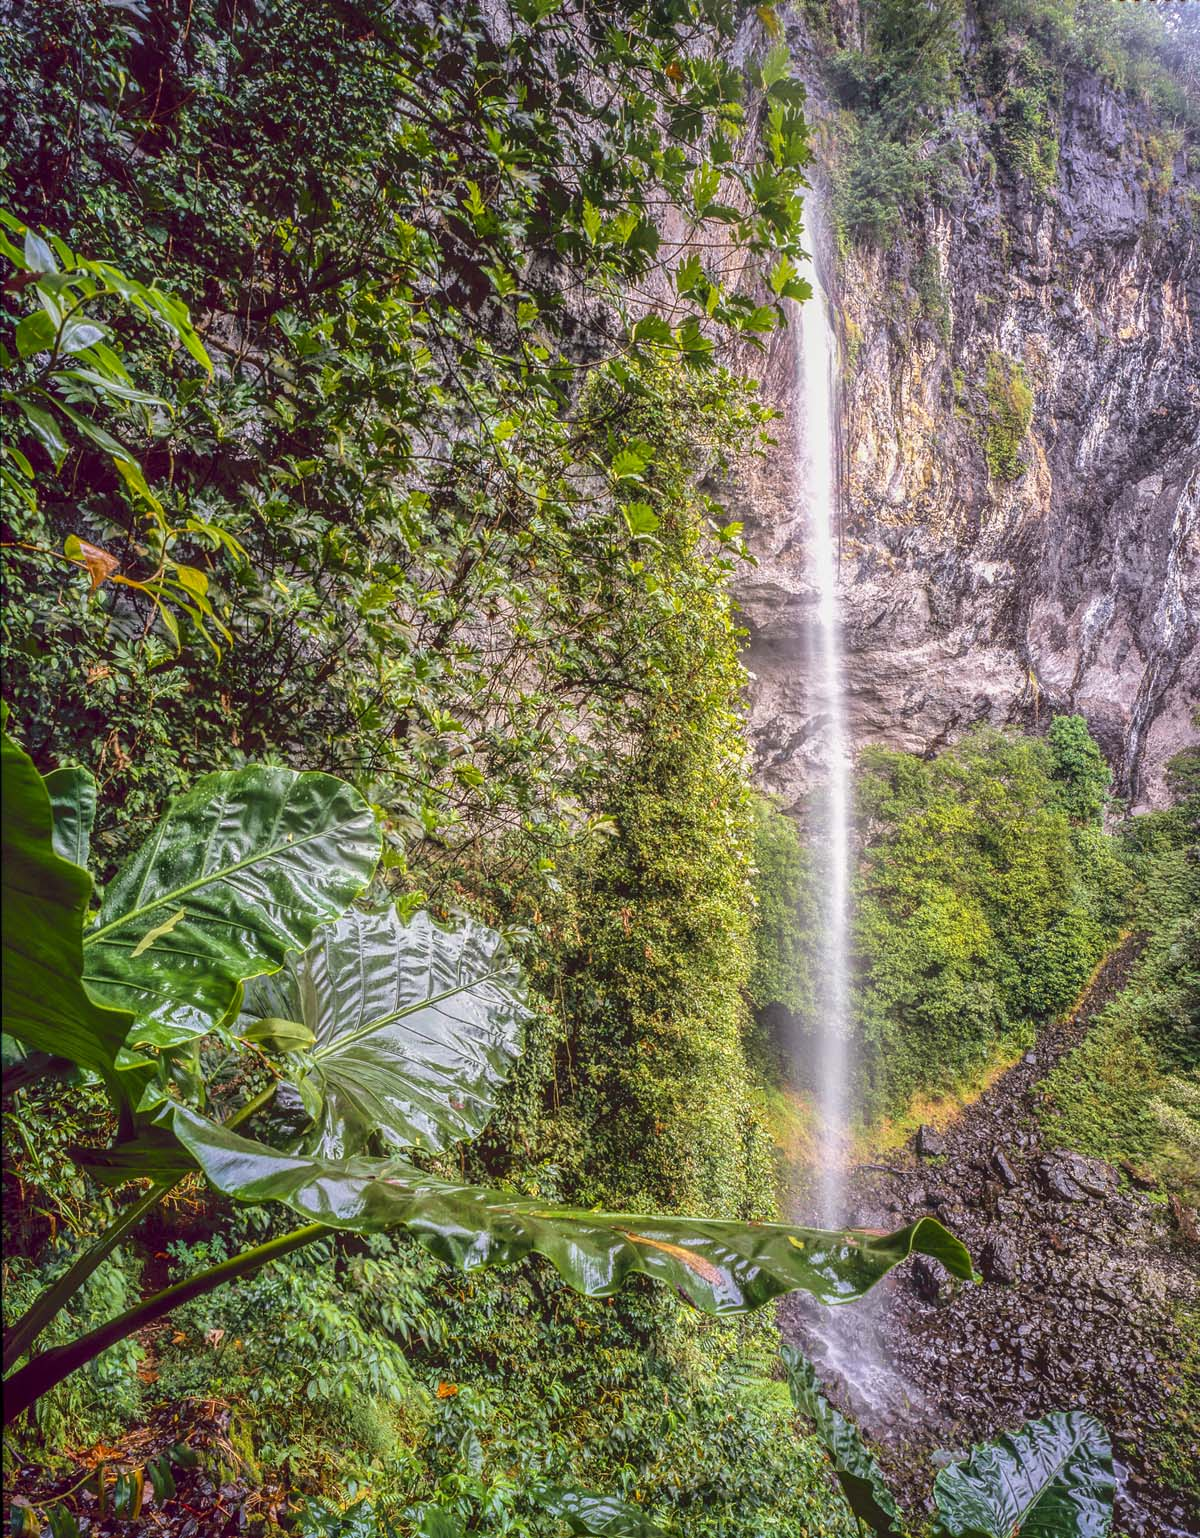 Pohnpei Island Waterfall, Micronesia photographed by Tom Till